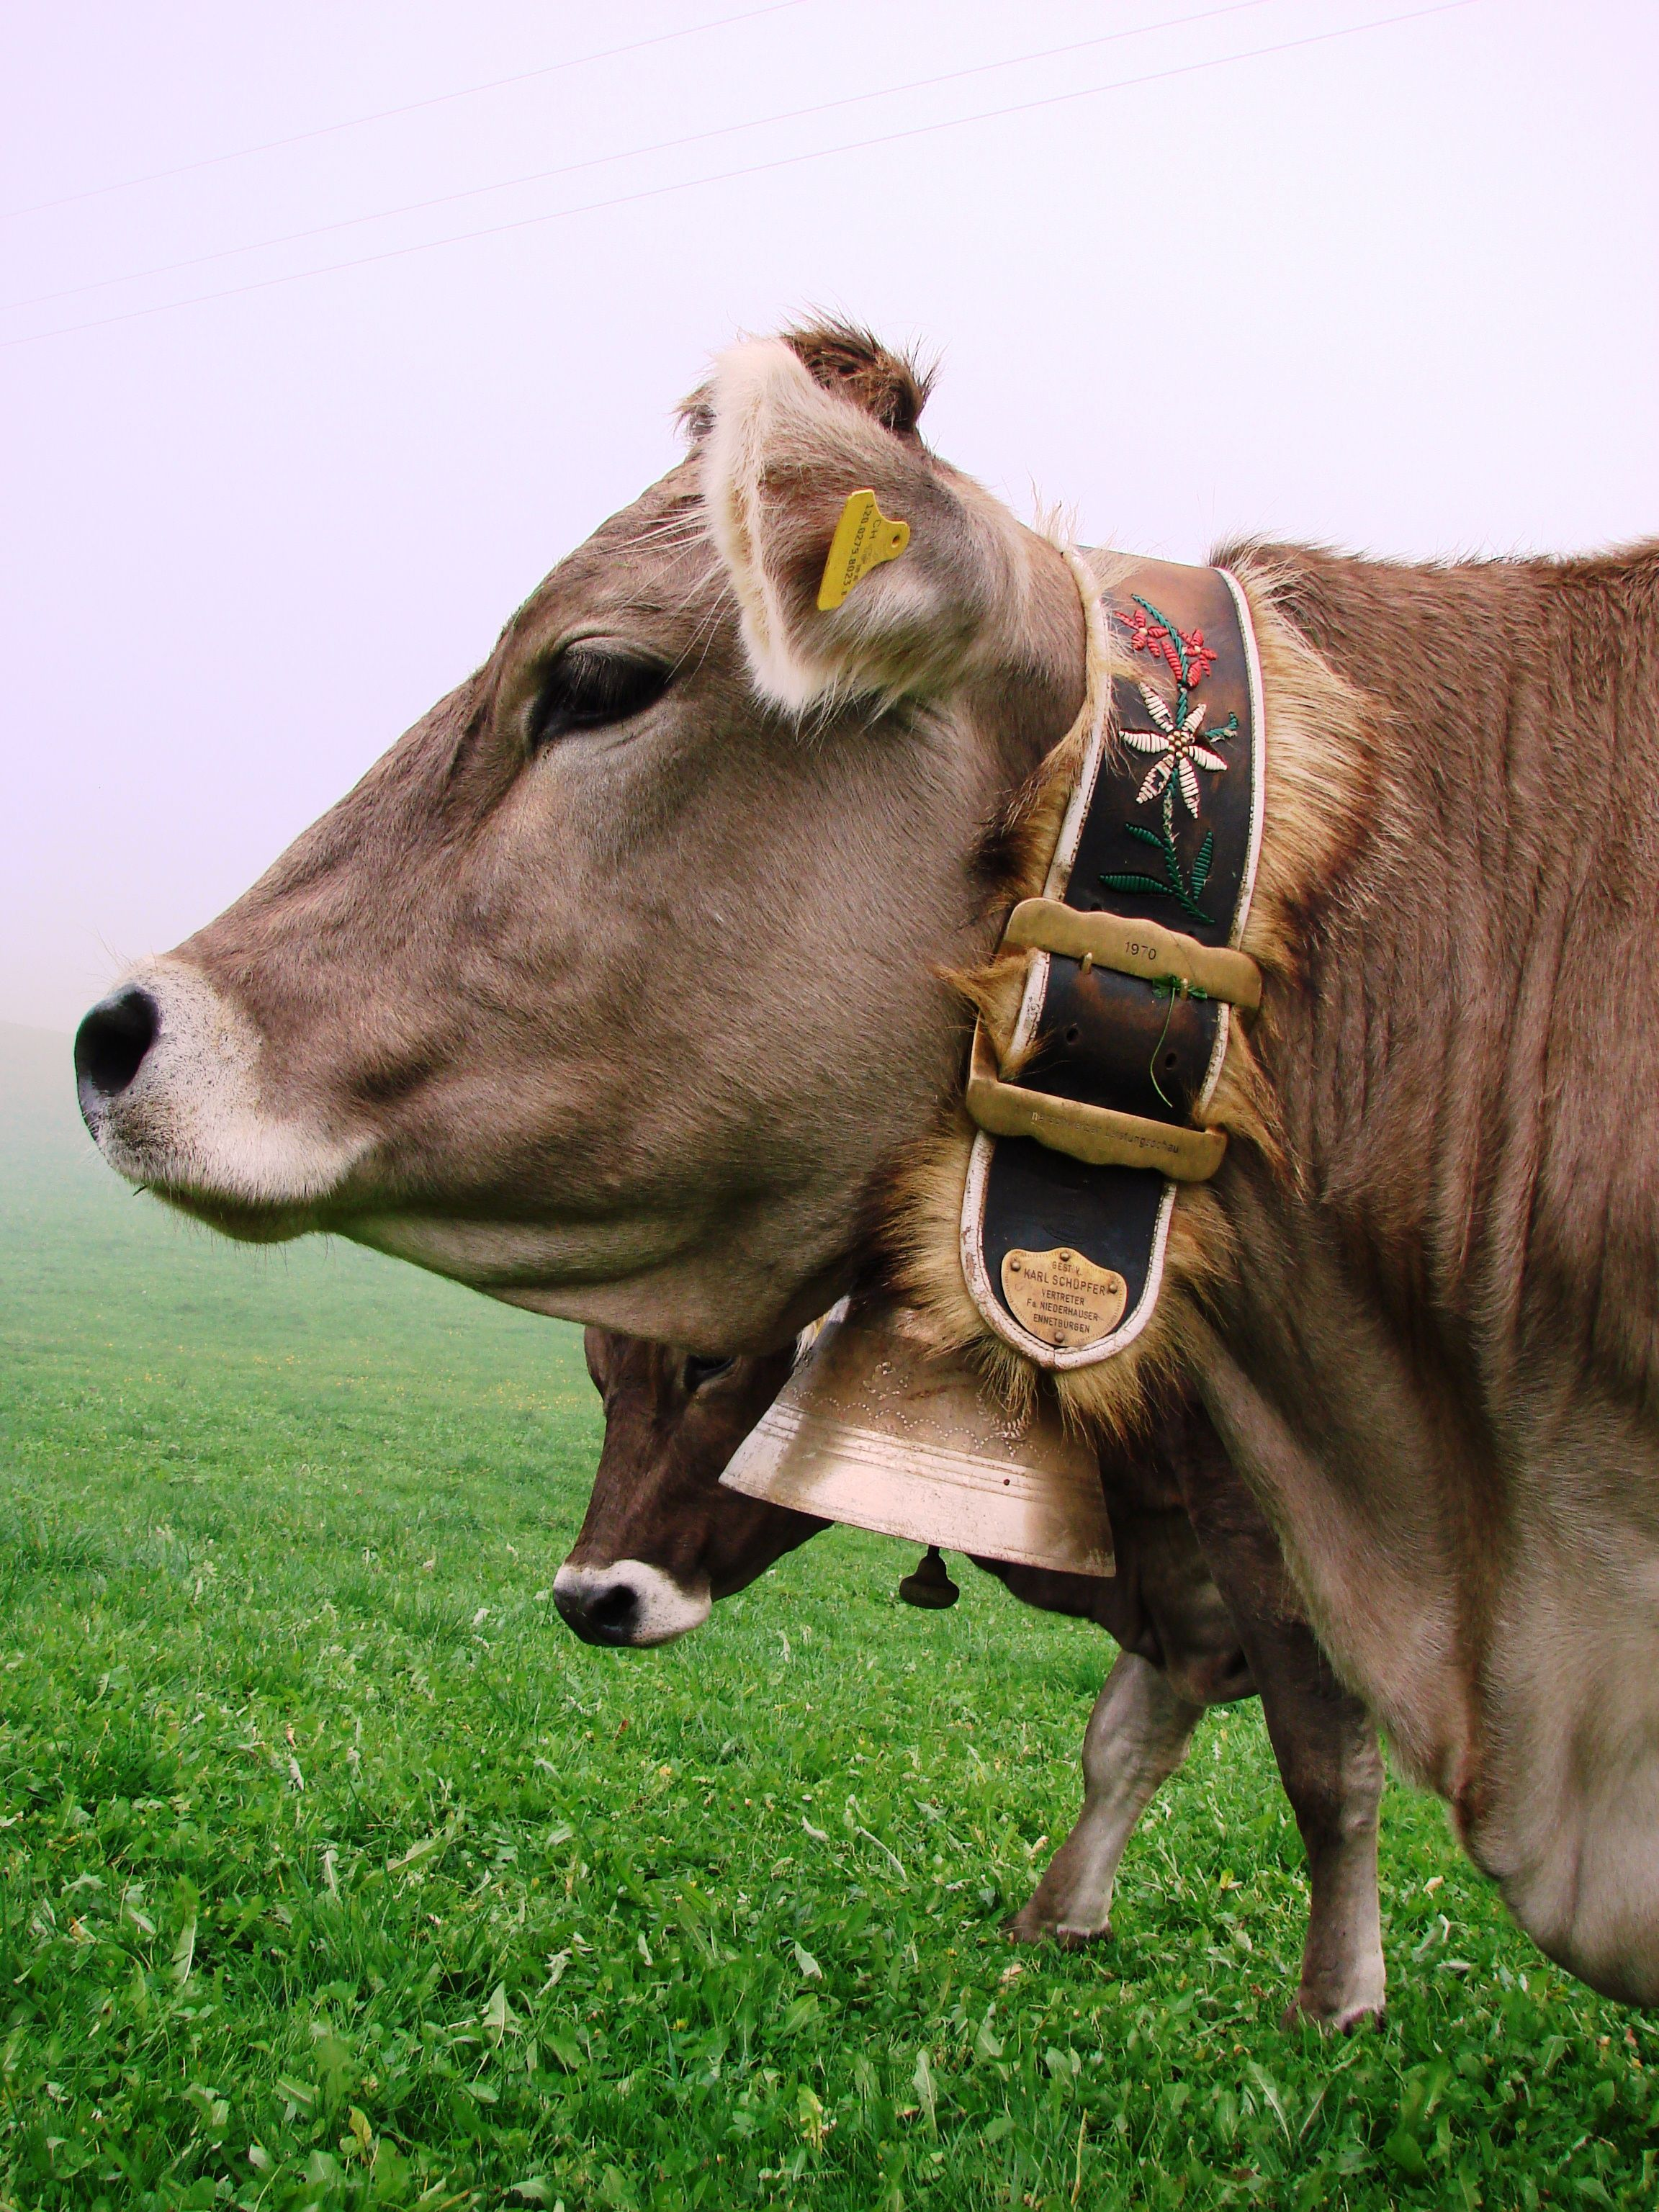 Swiss Cows Do Have Bells To Stop Them Getting Lost High In The Alpine Pasture The Breed Well Brown Swiss Of Course Haustiere Kaufen Tiere Kuh